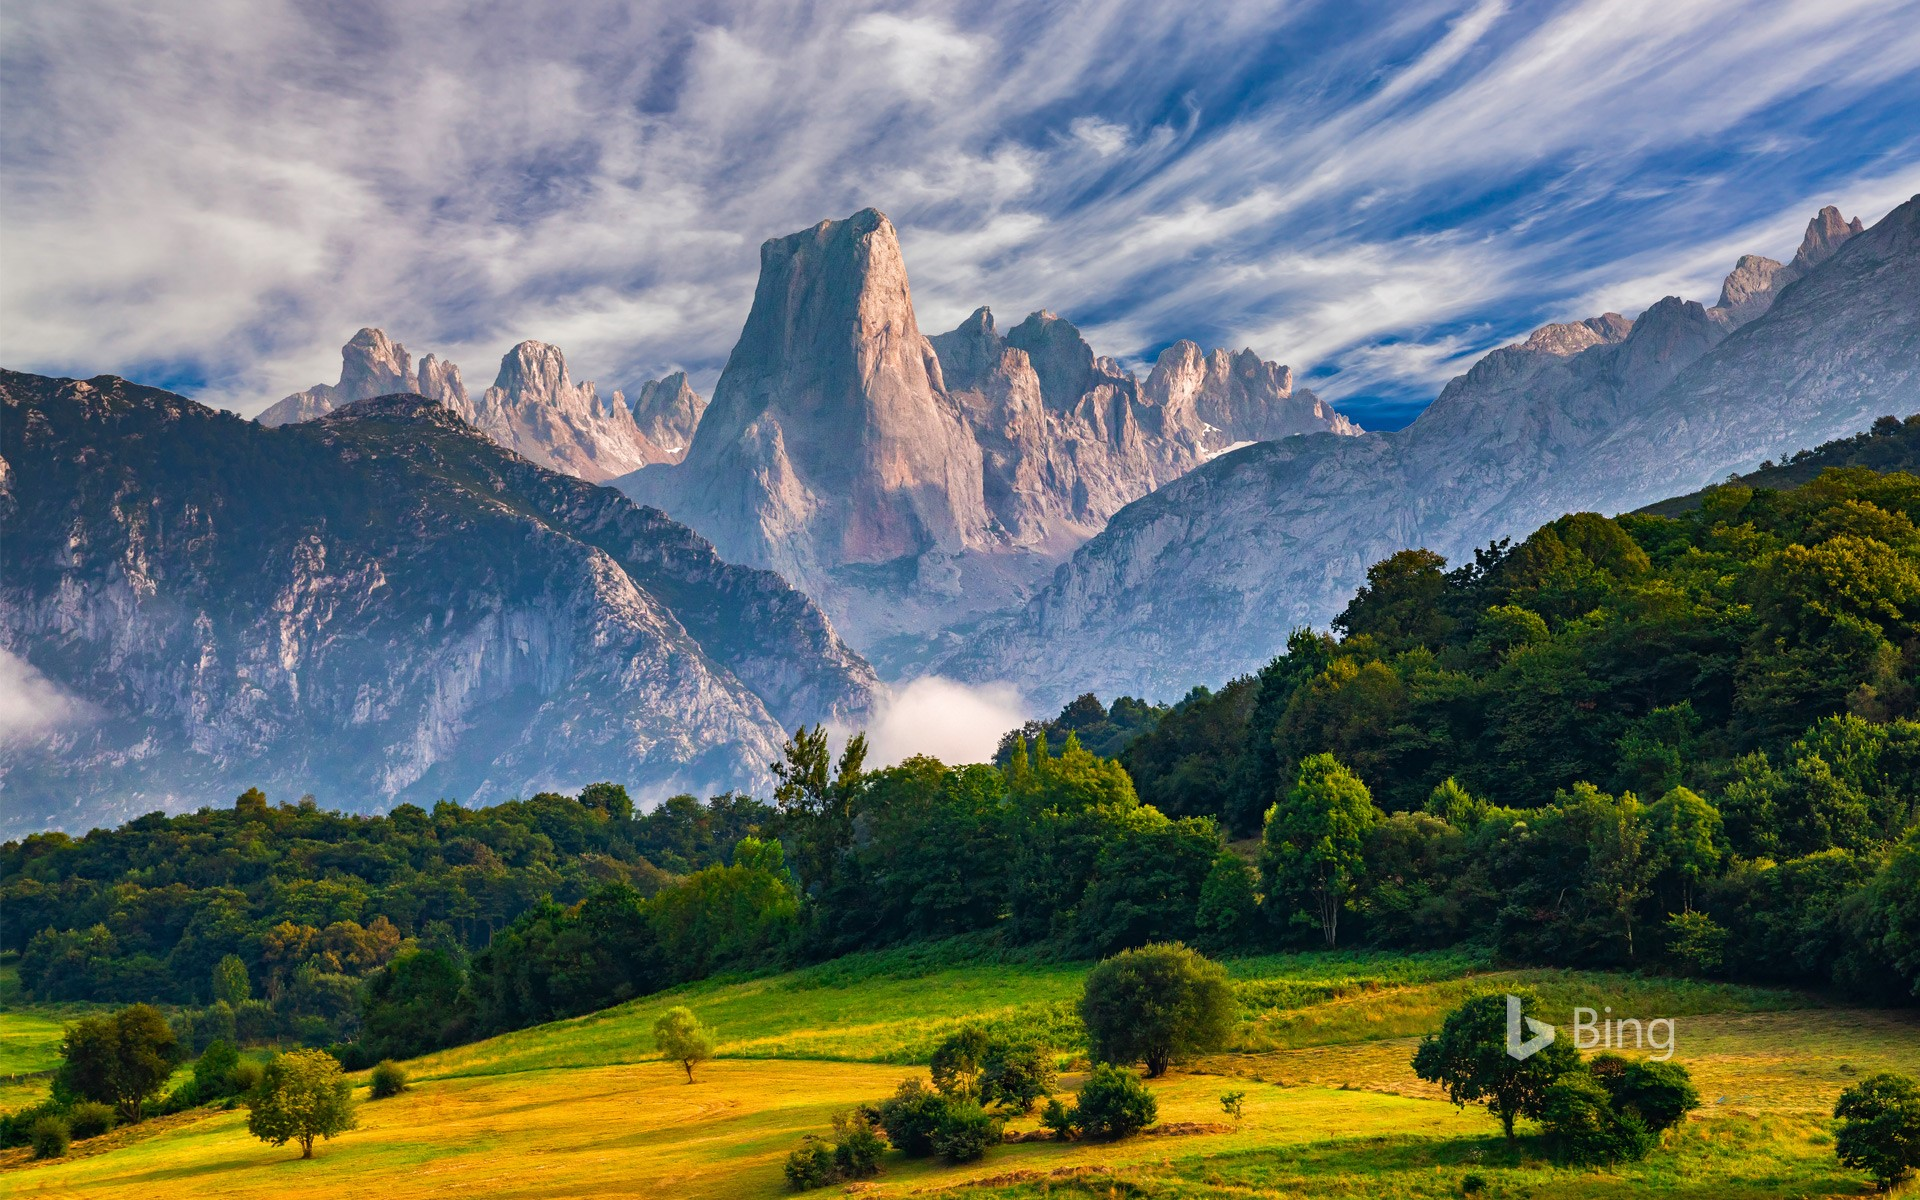 Naranjo de Bulnes peak, in Picos de Europa National Park, Asturias, Spain